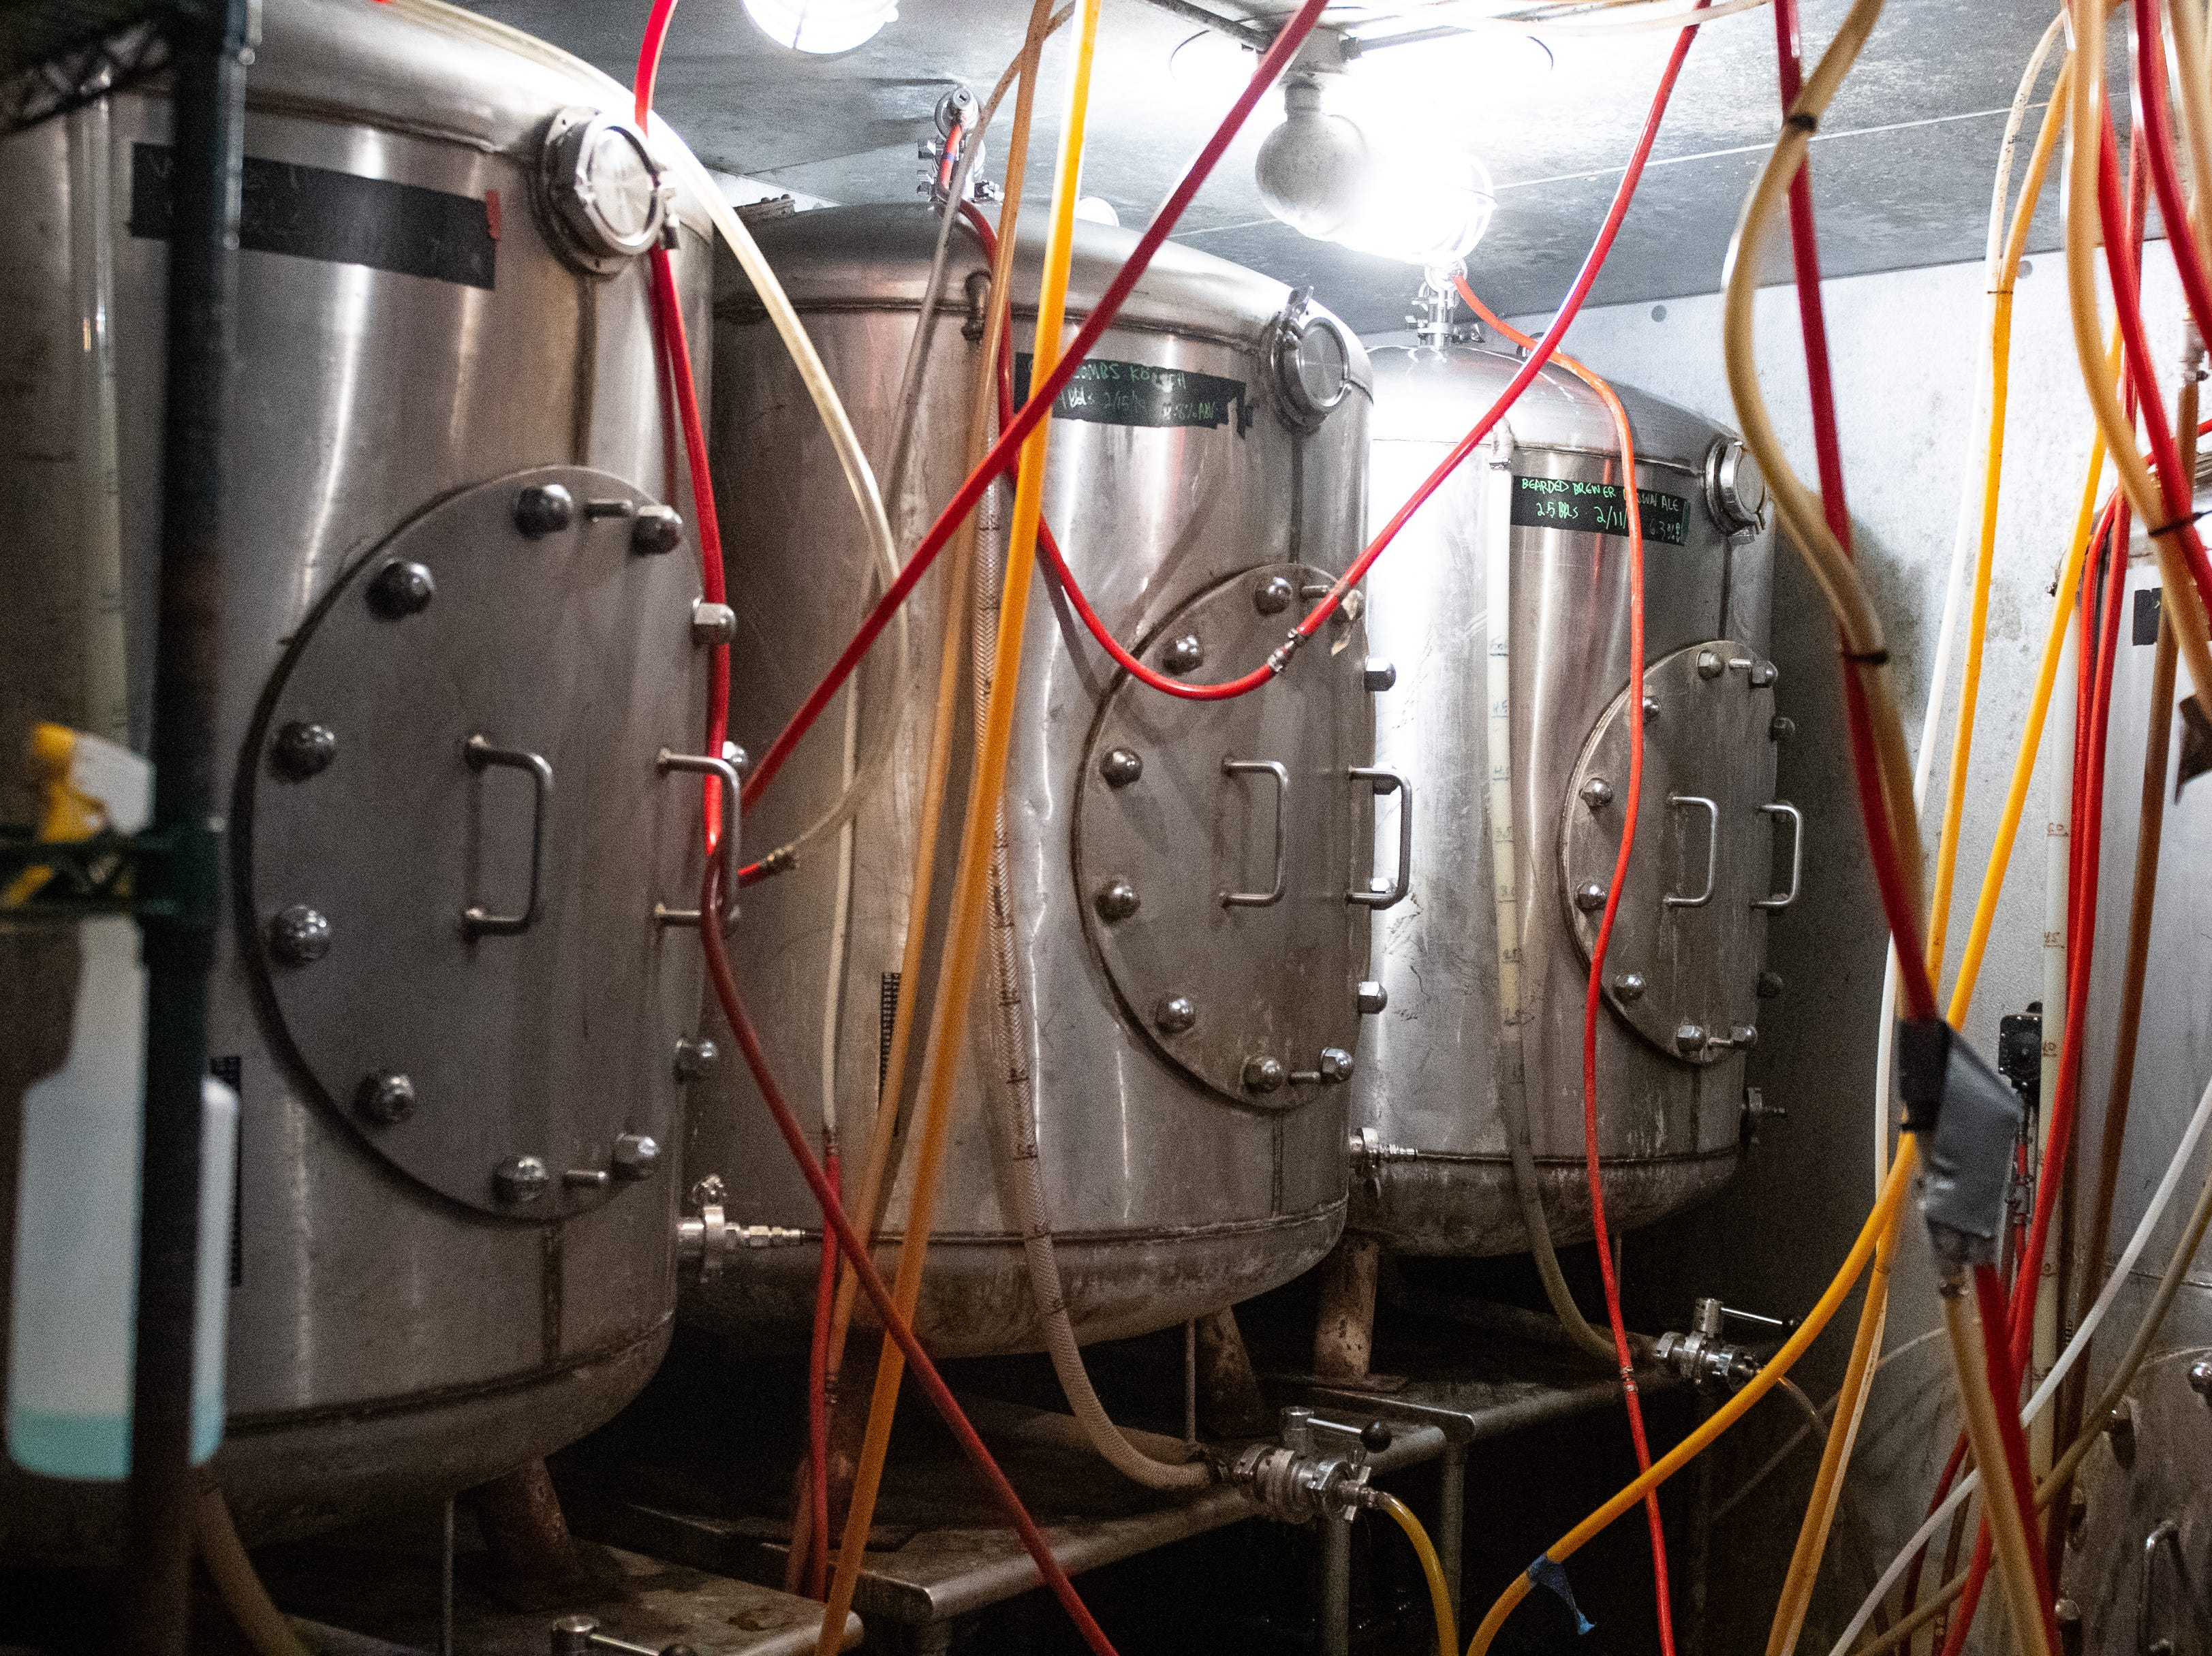 Near the Bottling Works kitchen is the brewery at Bube's. Production was shut down during Prohibition and did not resume until 2001.  February 22, 2019, February 22, 2019.